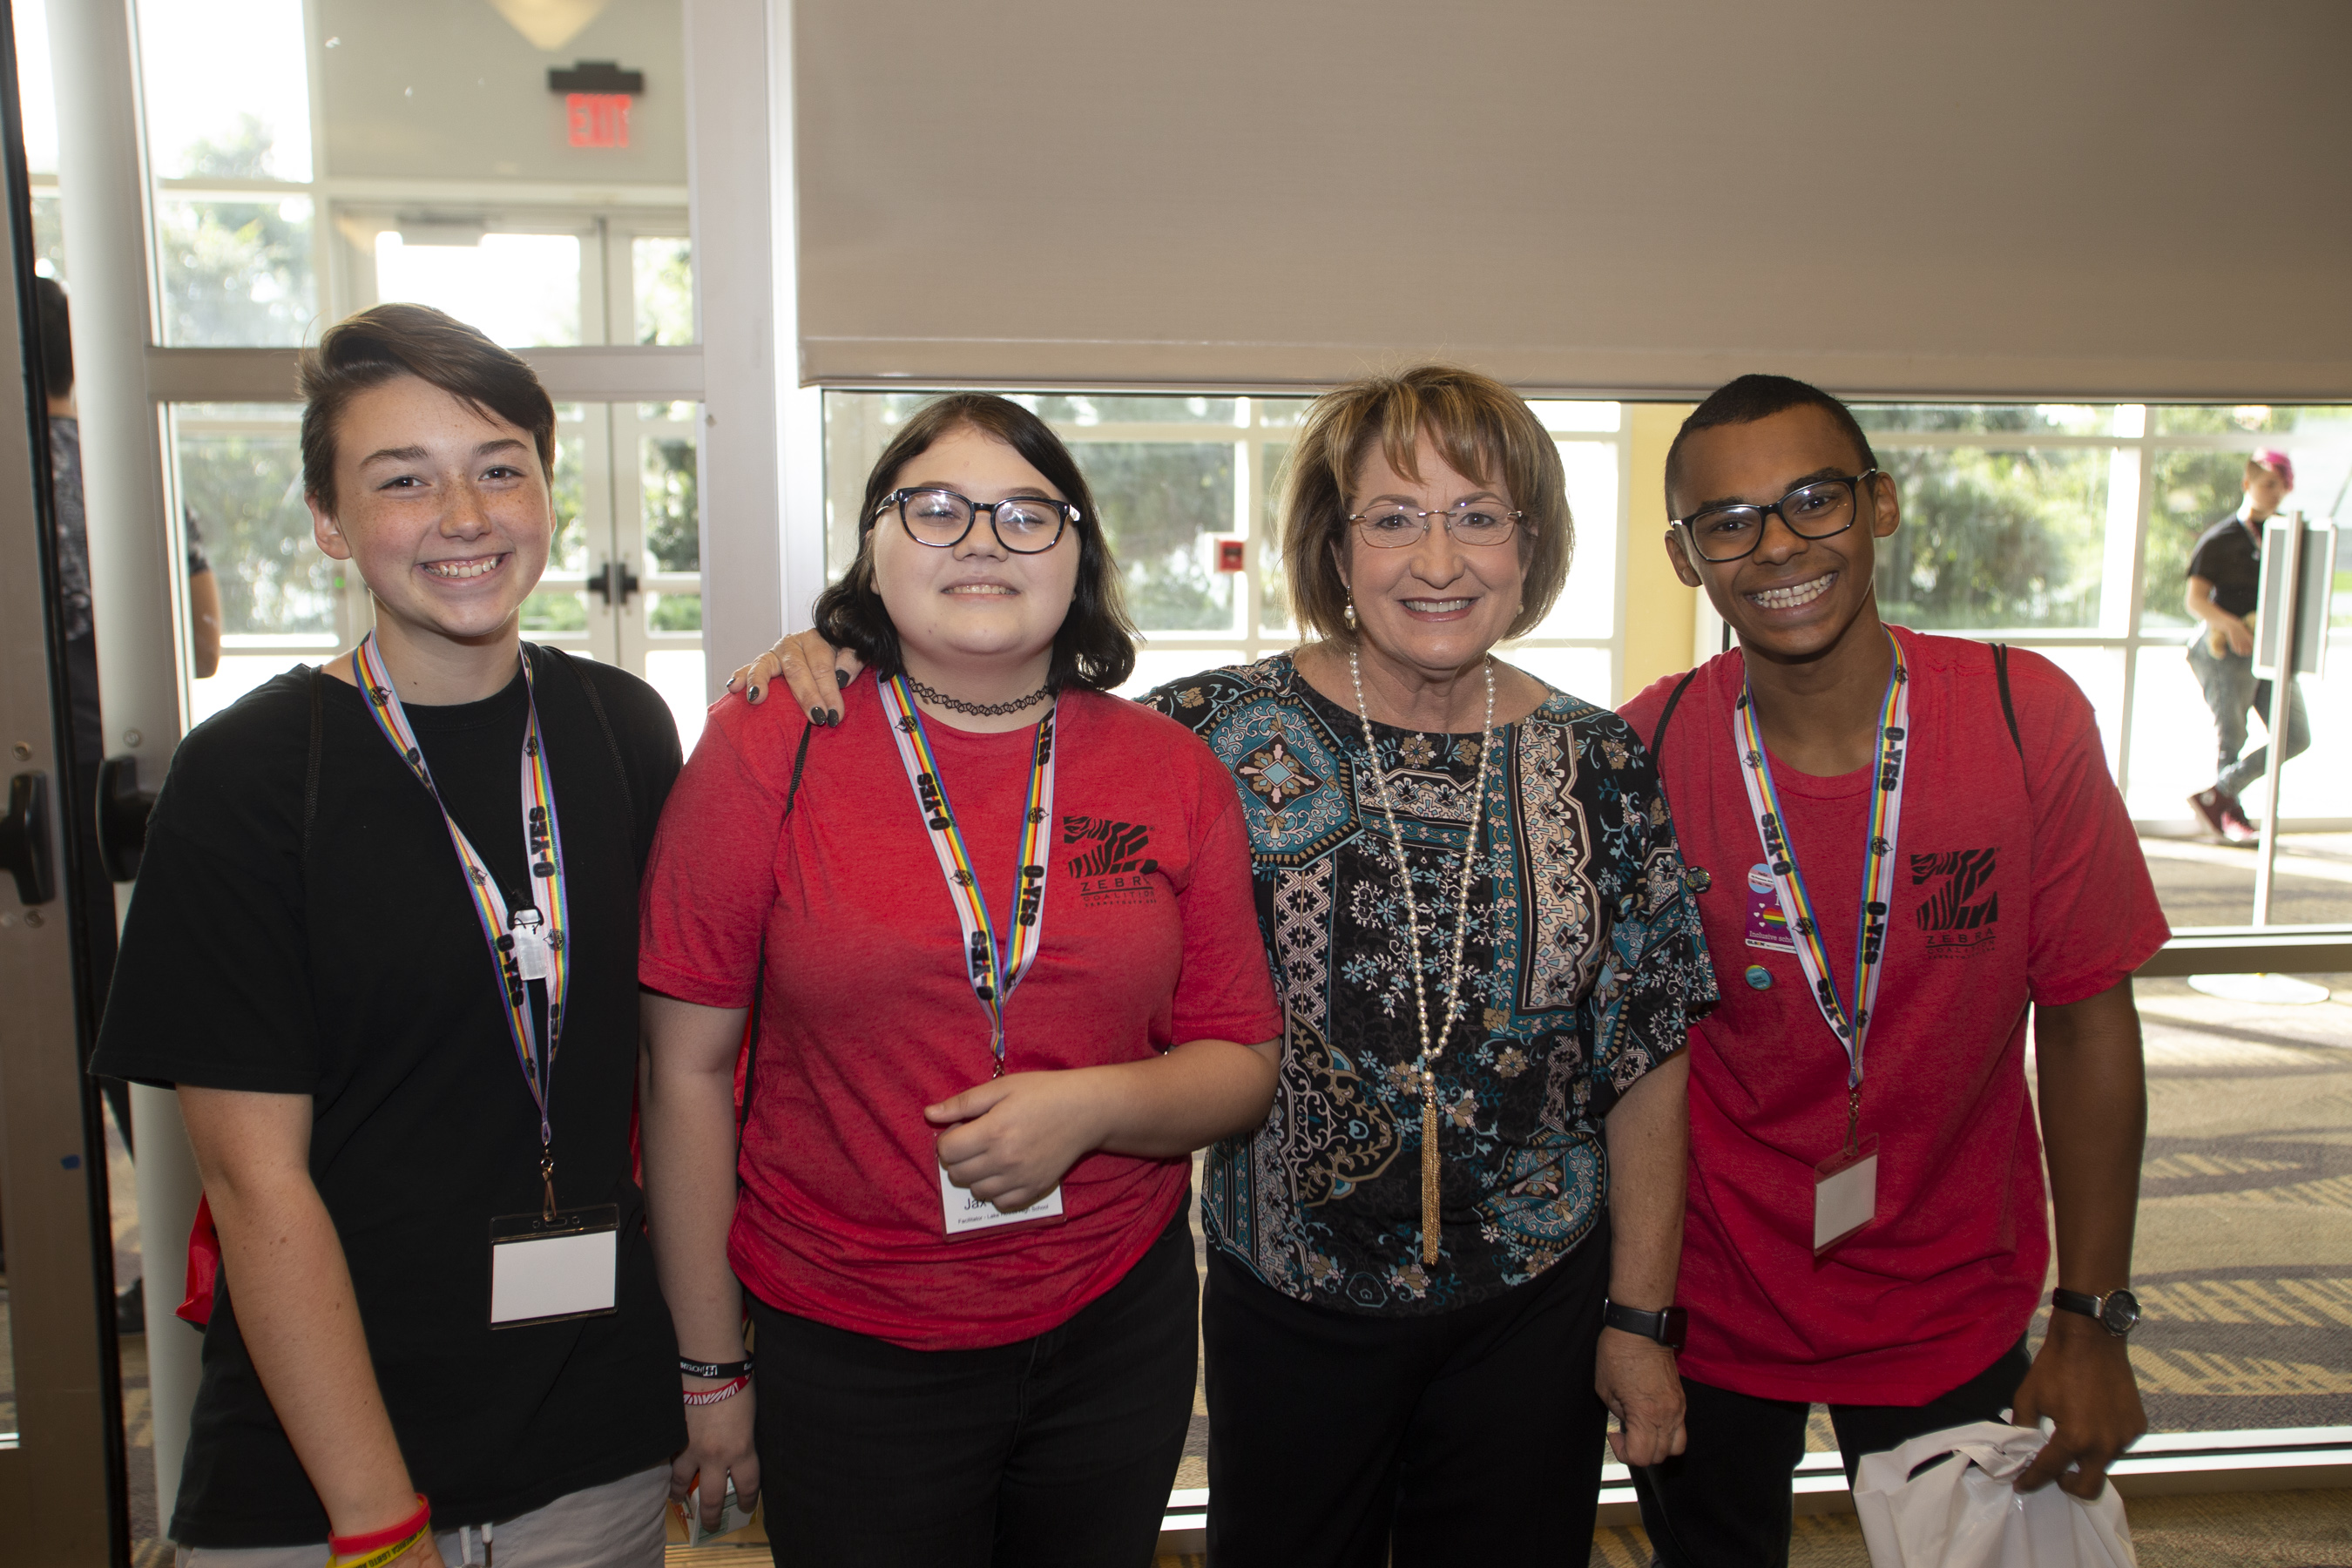 Mayor Jacobs posing for a photo with three teens